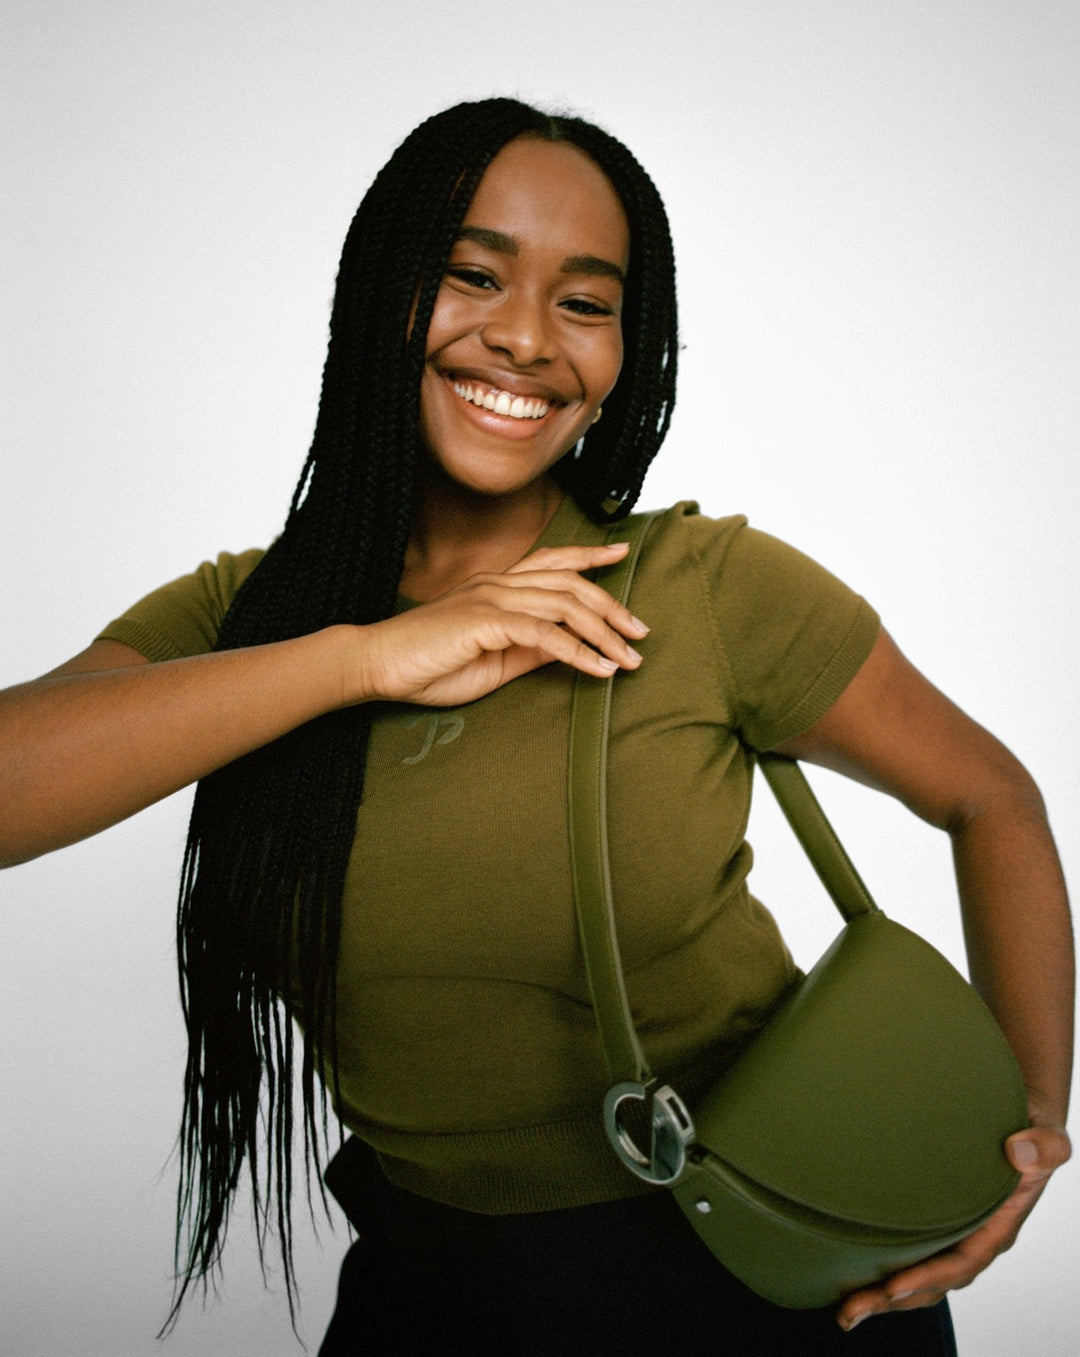 Capricorn Celeste Bag in Olive on Enga